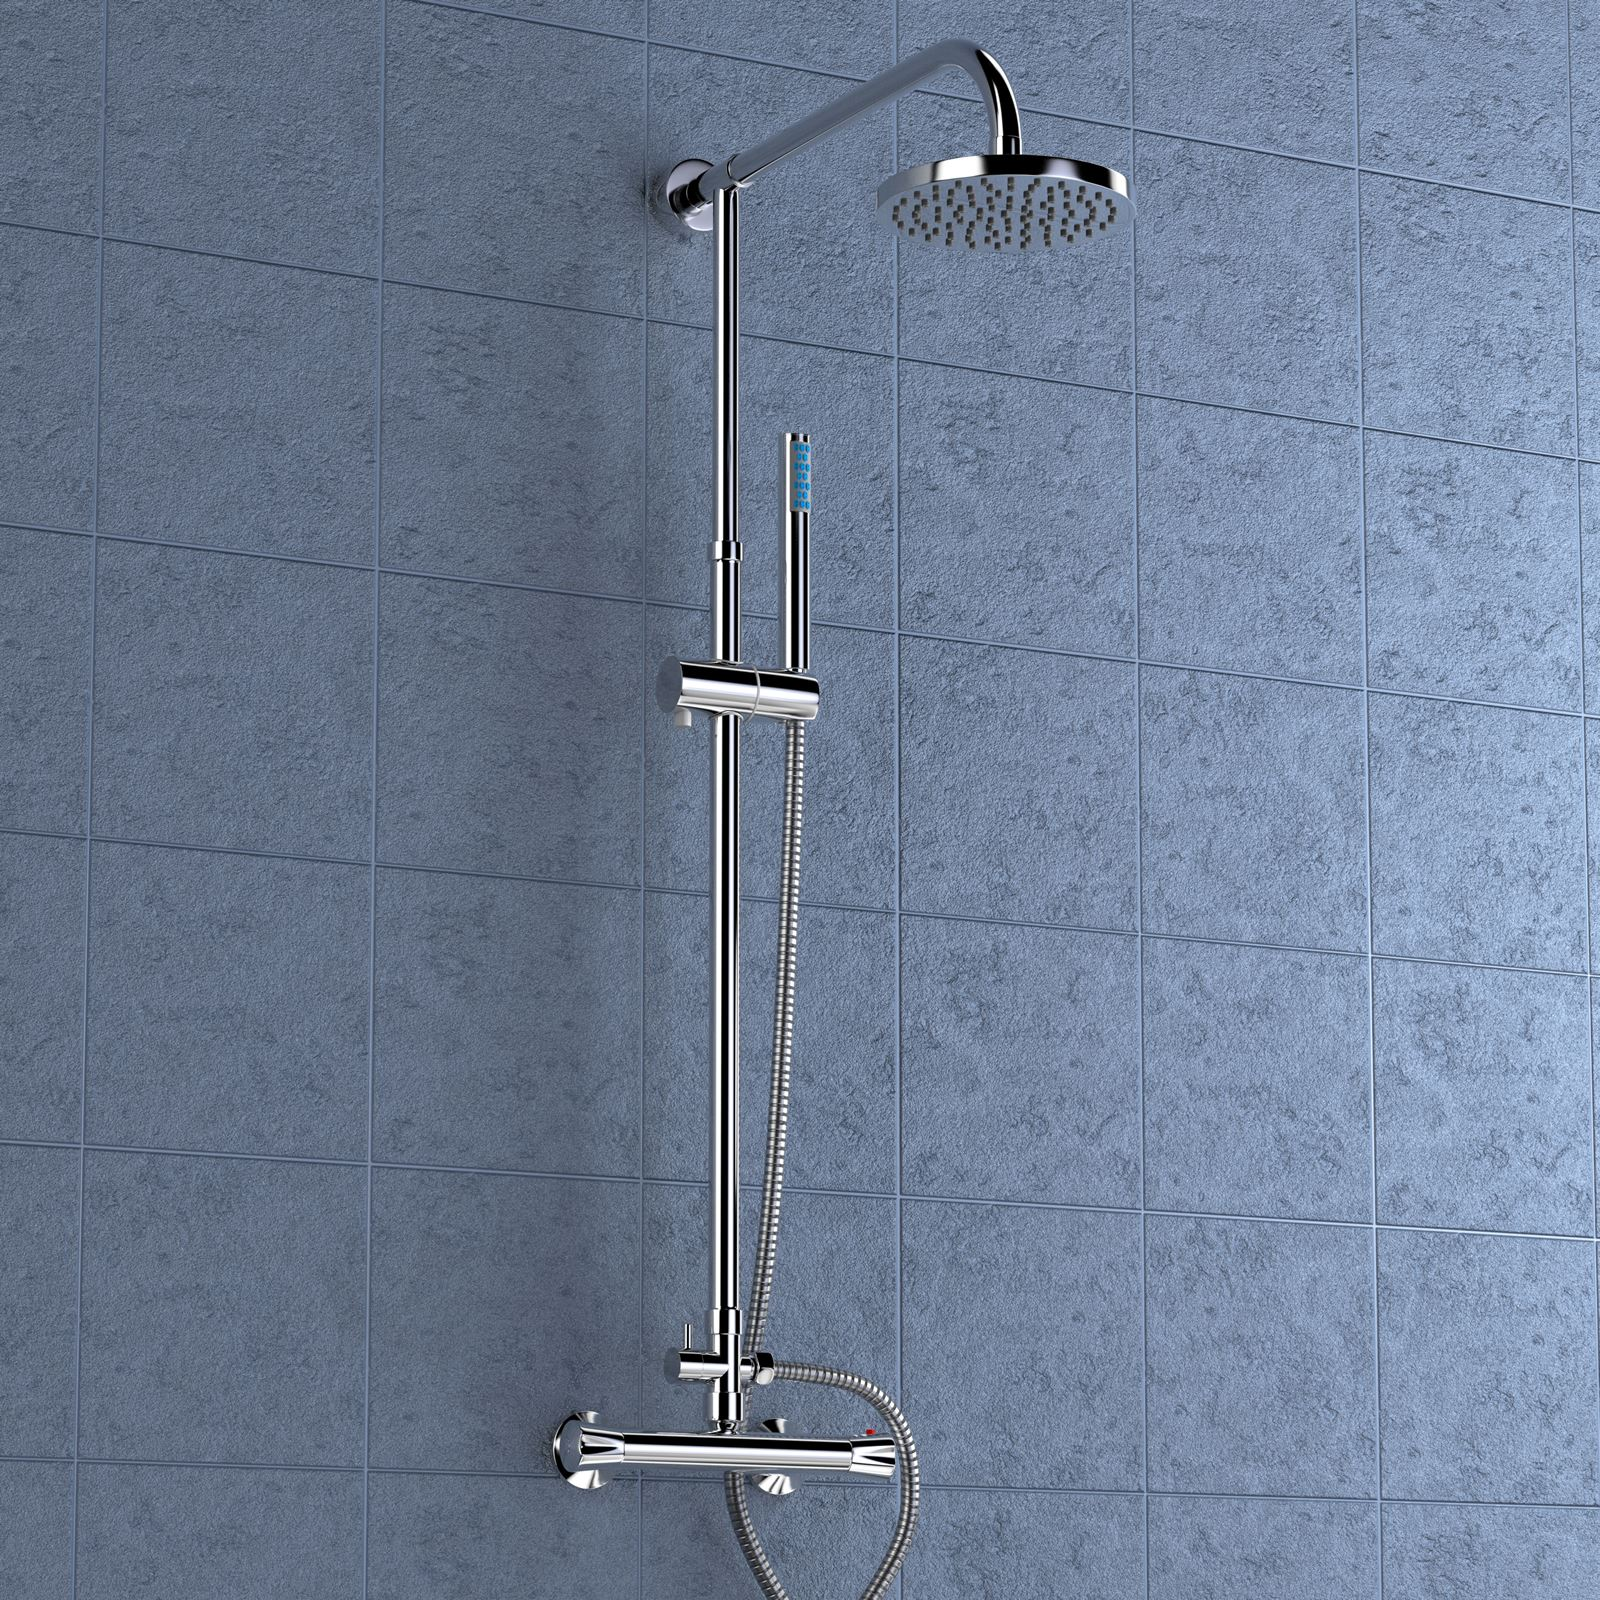 Clarity-Round-Valore-Square-Twin-Head-Thermostatic-Shower-Mixer-Chrome-Bathroom